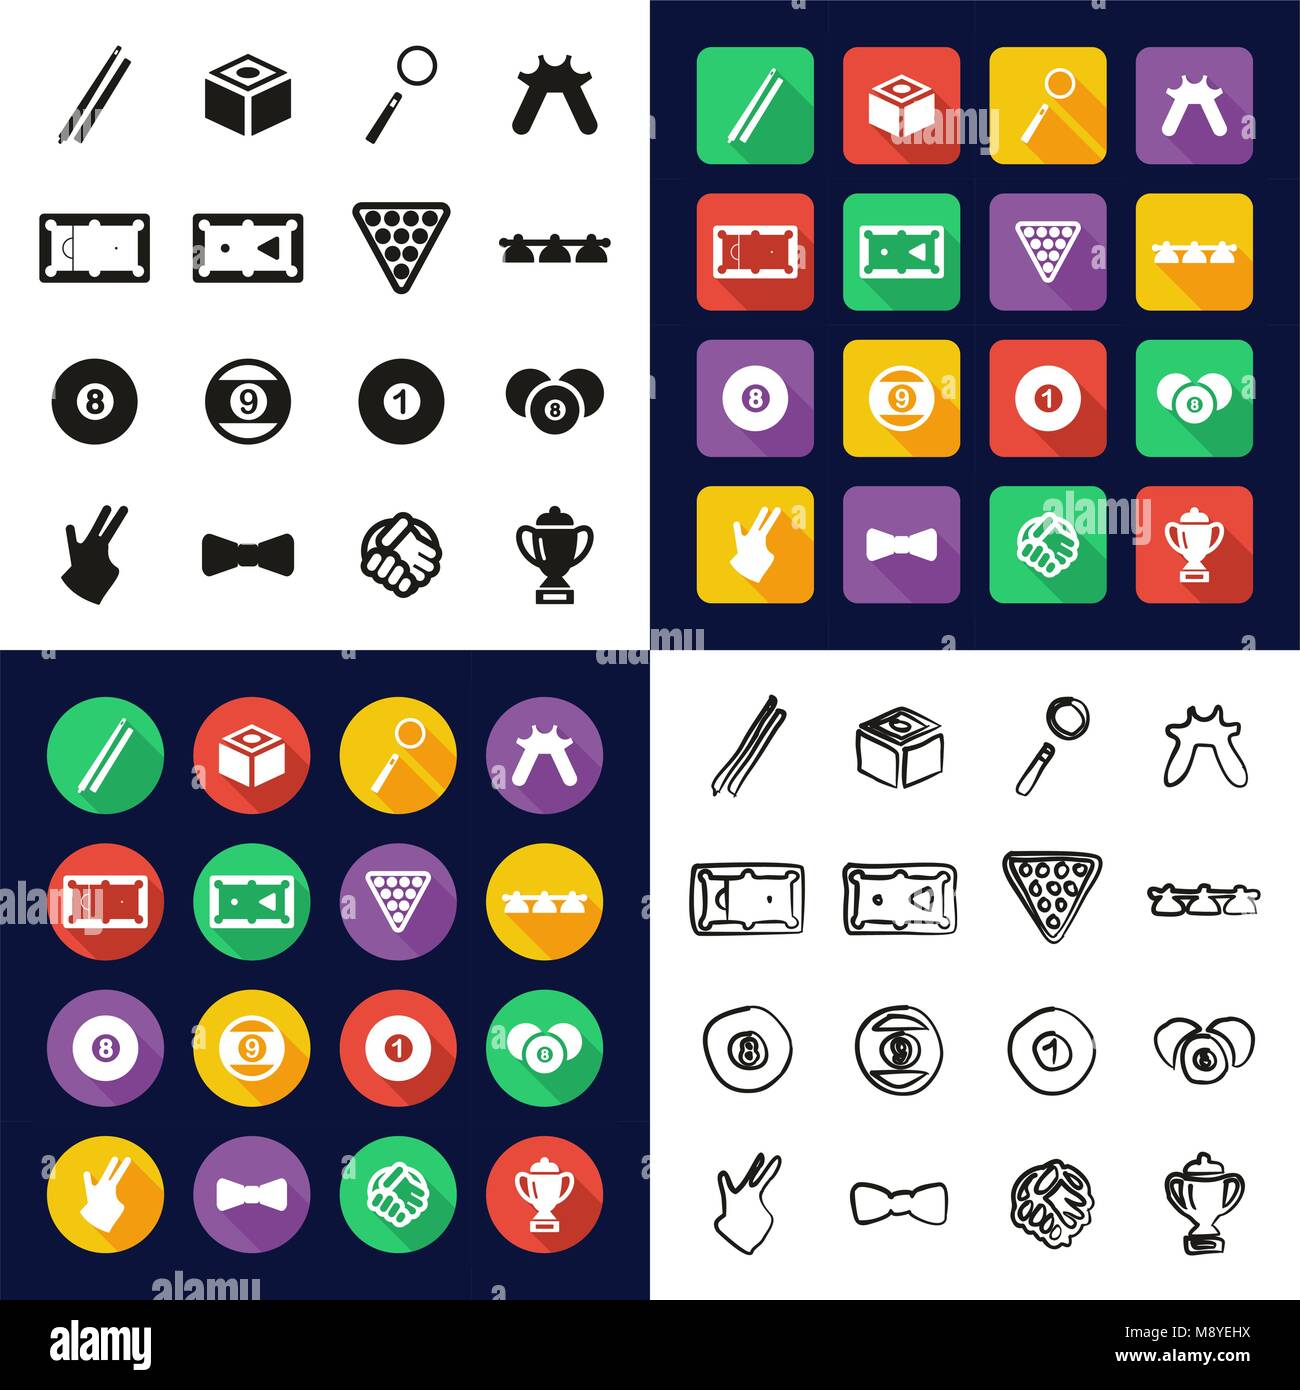 Billiards All in One Icons Black & White Color Flat Design Freehand Set - Stock Vector